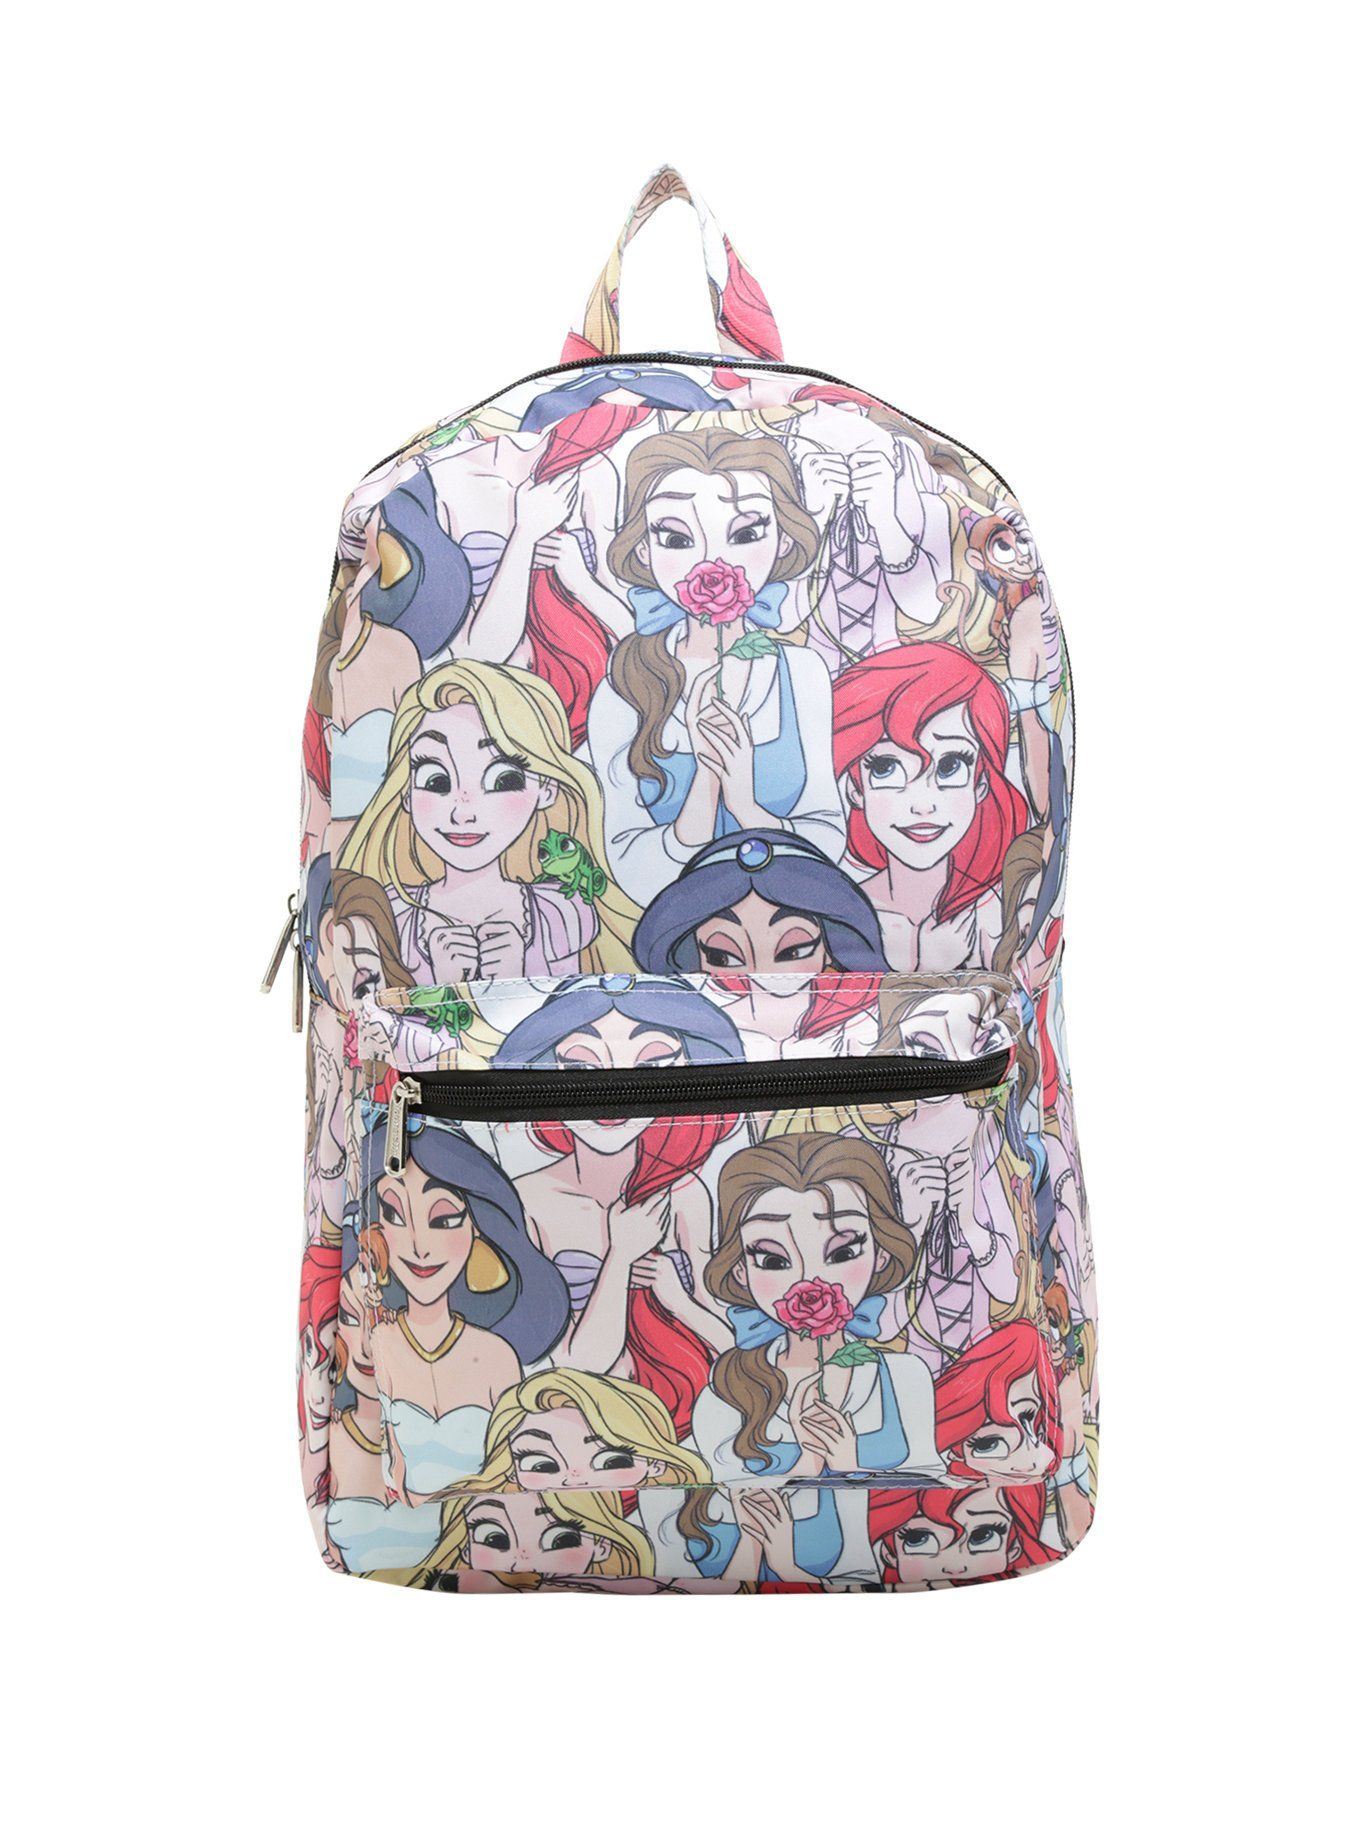 Loungefly disney princess characters backpack in 2019   Disney ... 2a662cf9b79